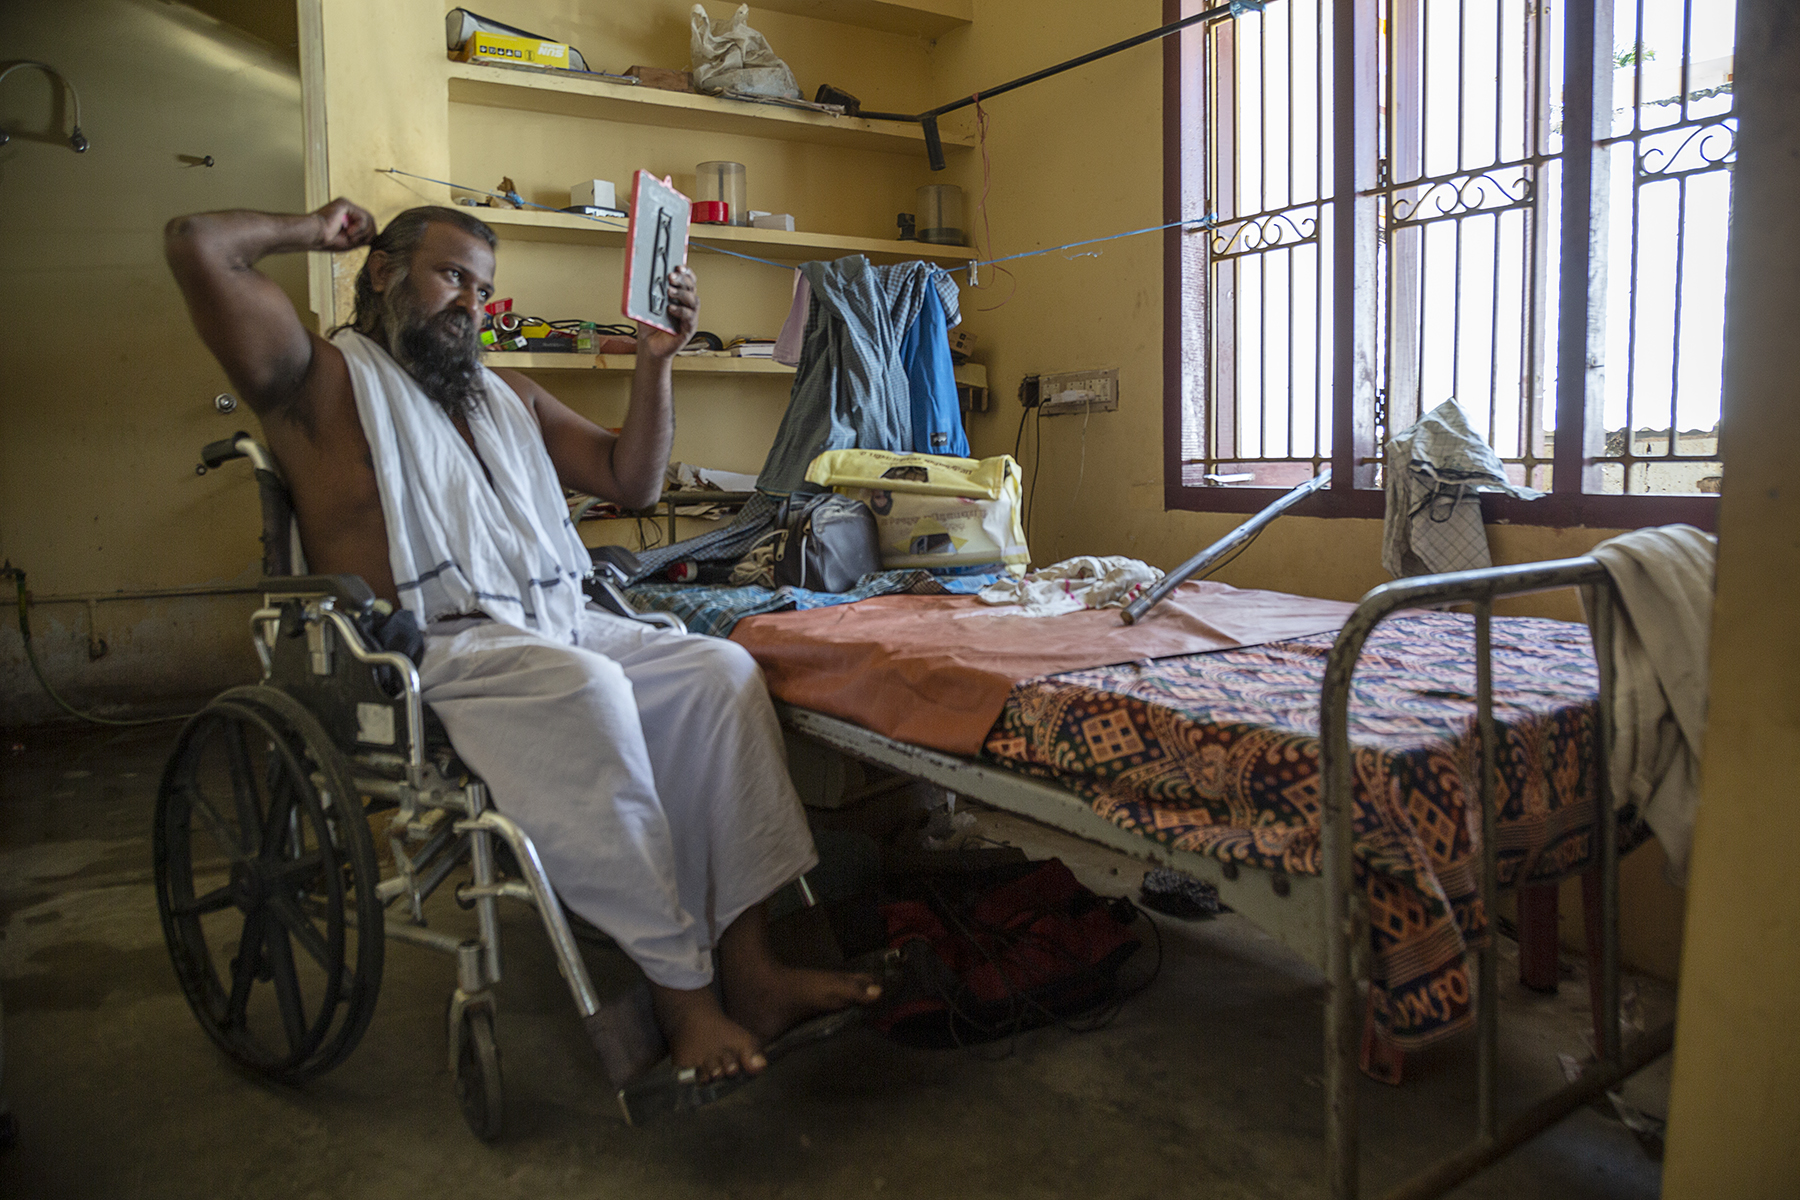 Vallinayagam in white dhoti and white veshti sits in his wheelchair in his room. He is holding a mirror and combing his hair. Behind him are shelves built into the wall. To the right is a cot below a window with three panes. Two lungis and a pair of trousers bunched together hang on a clothesline strung between the wall and a window grill.